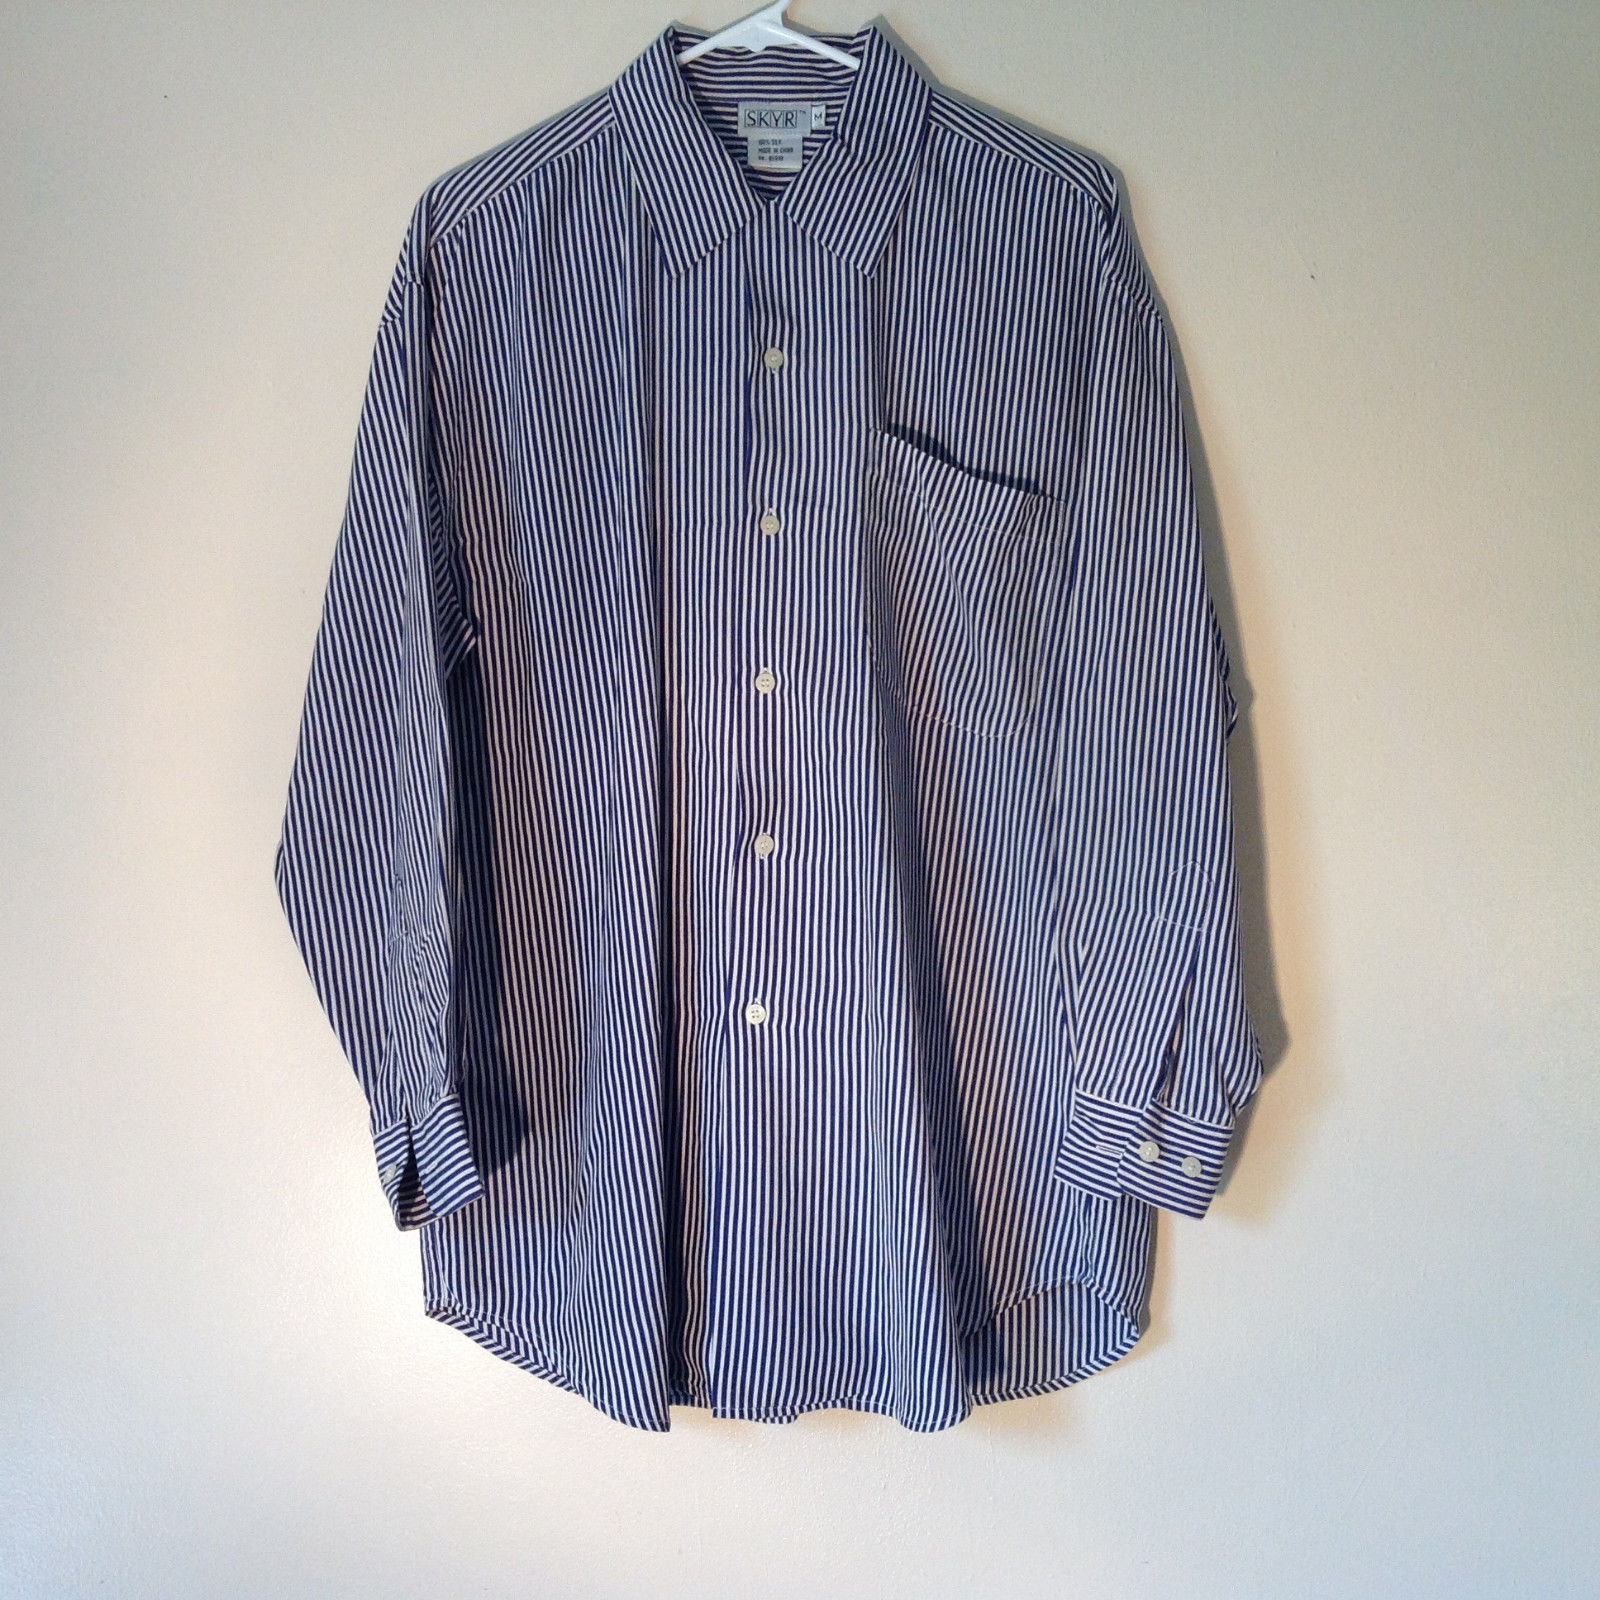 Blue and White Striped Button Down Collared Shirt SKYR 1 Front Pocket Size M